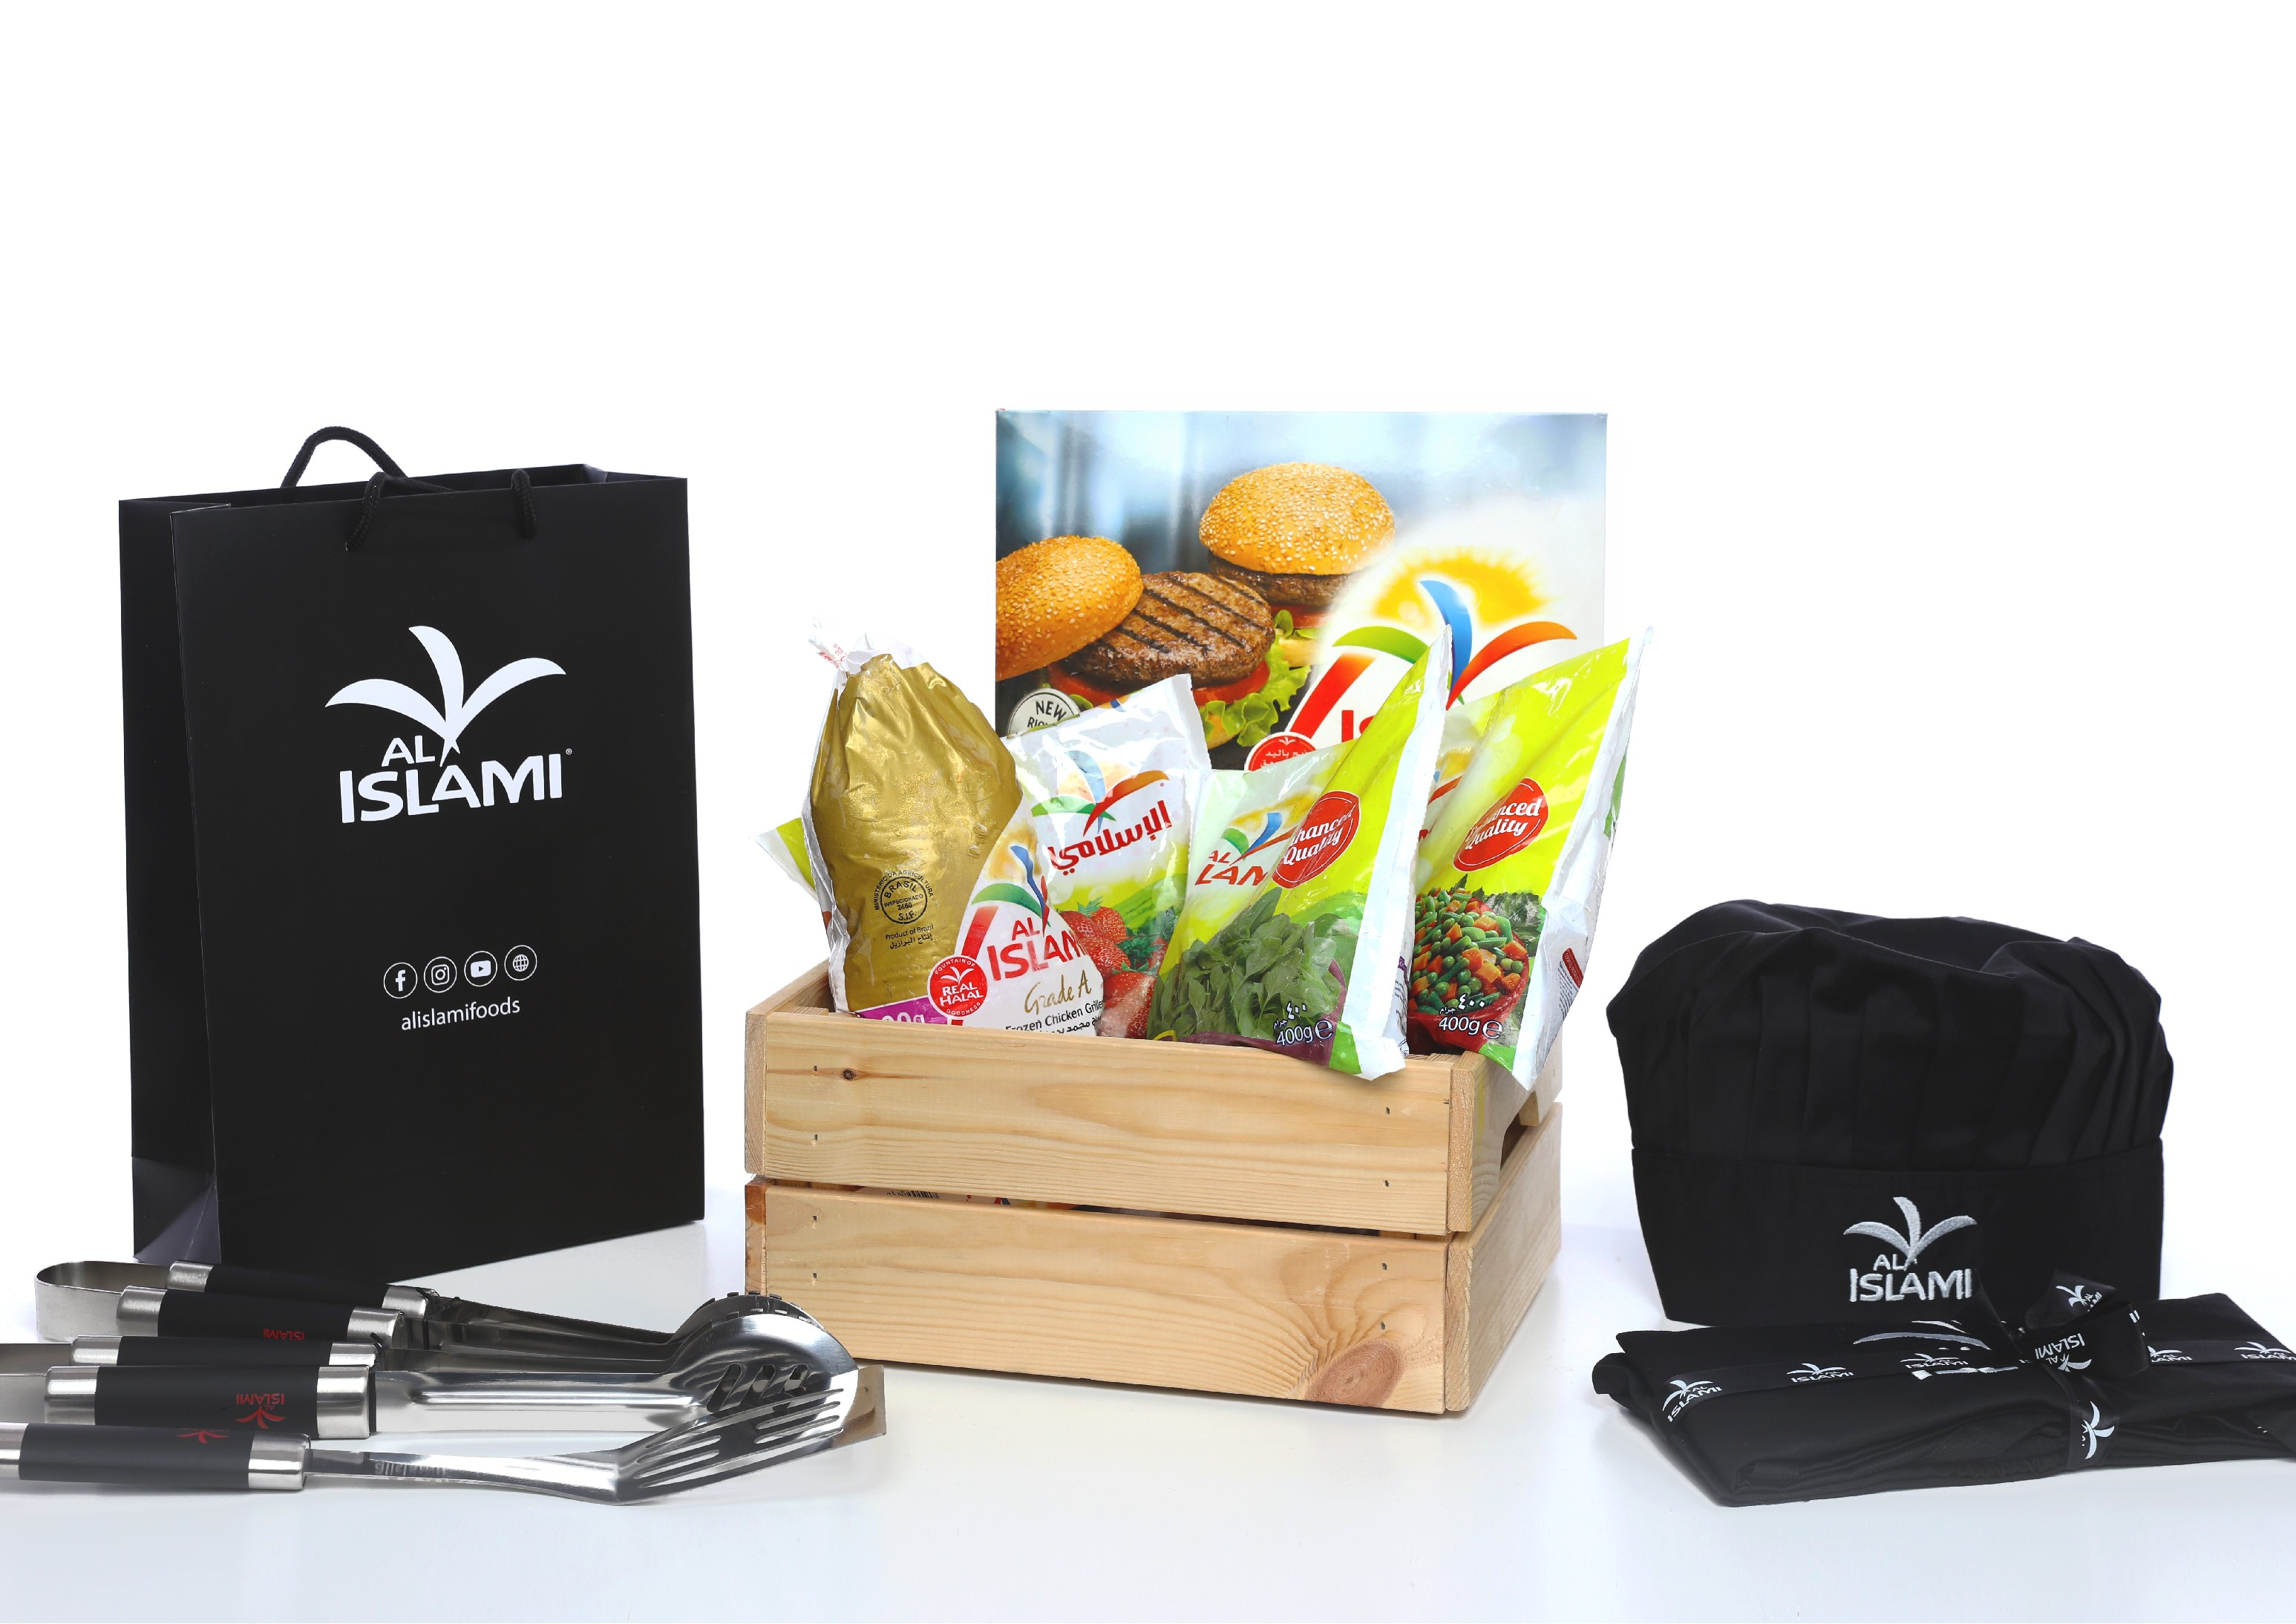 Al Islami Introduces Limited Edition Chef Boxes this Ramdan Season